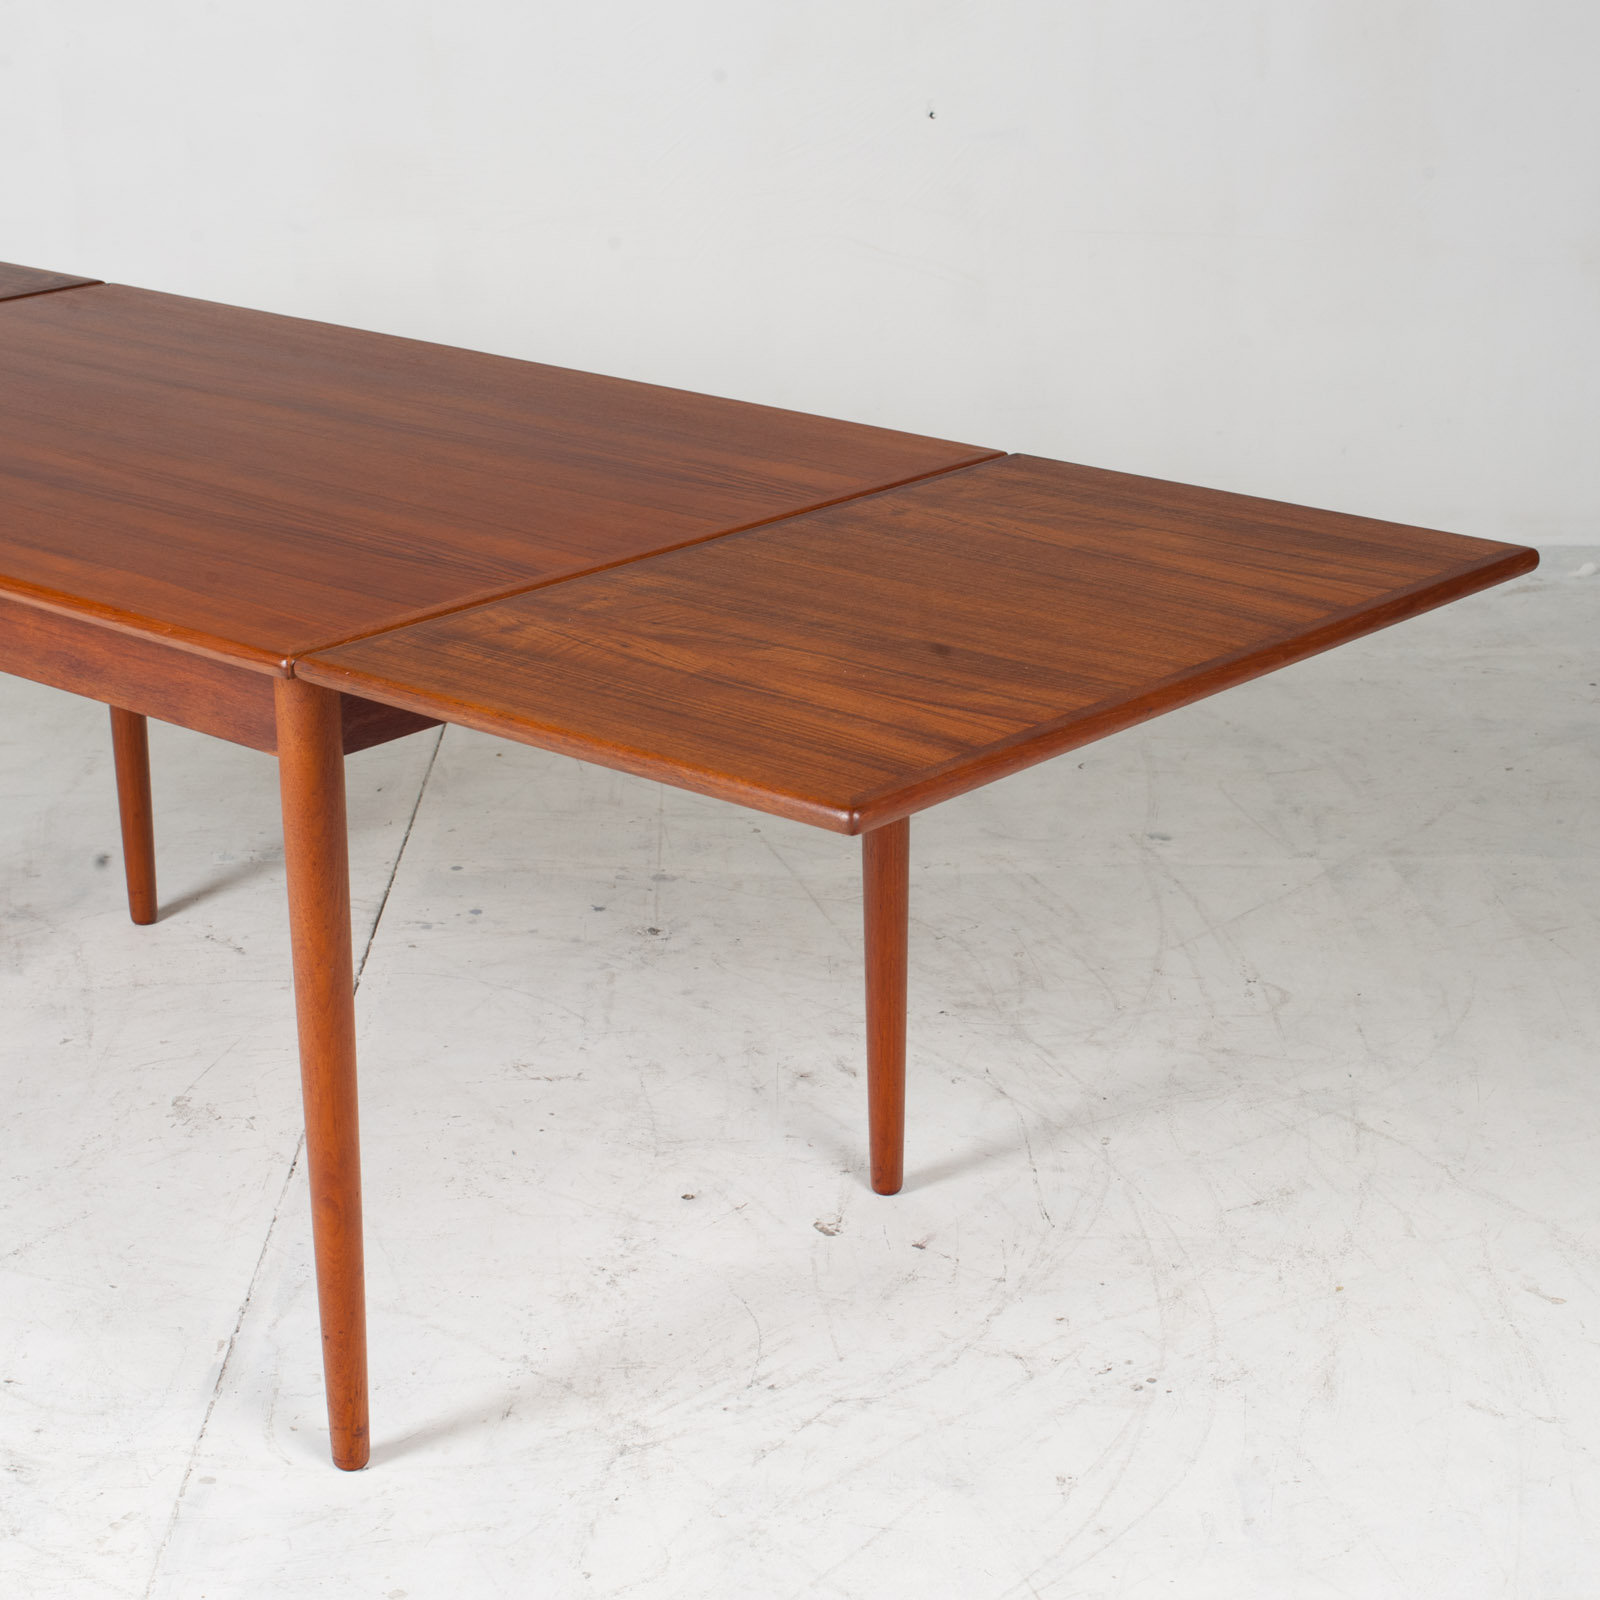 Rectangular Dining Table In Teak With Concealed Extentions 1960s Denmark13